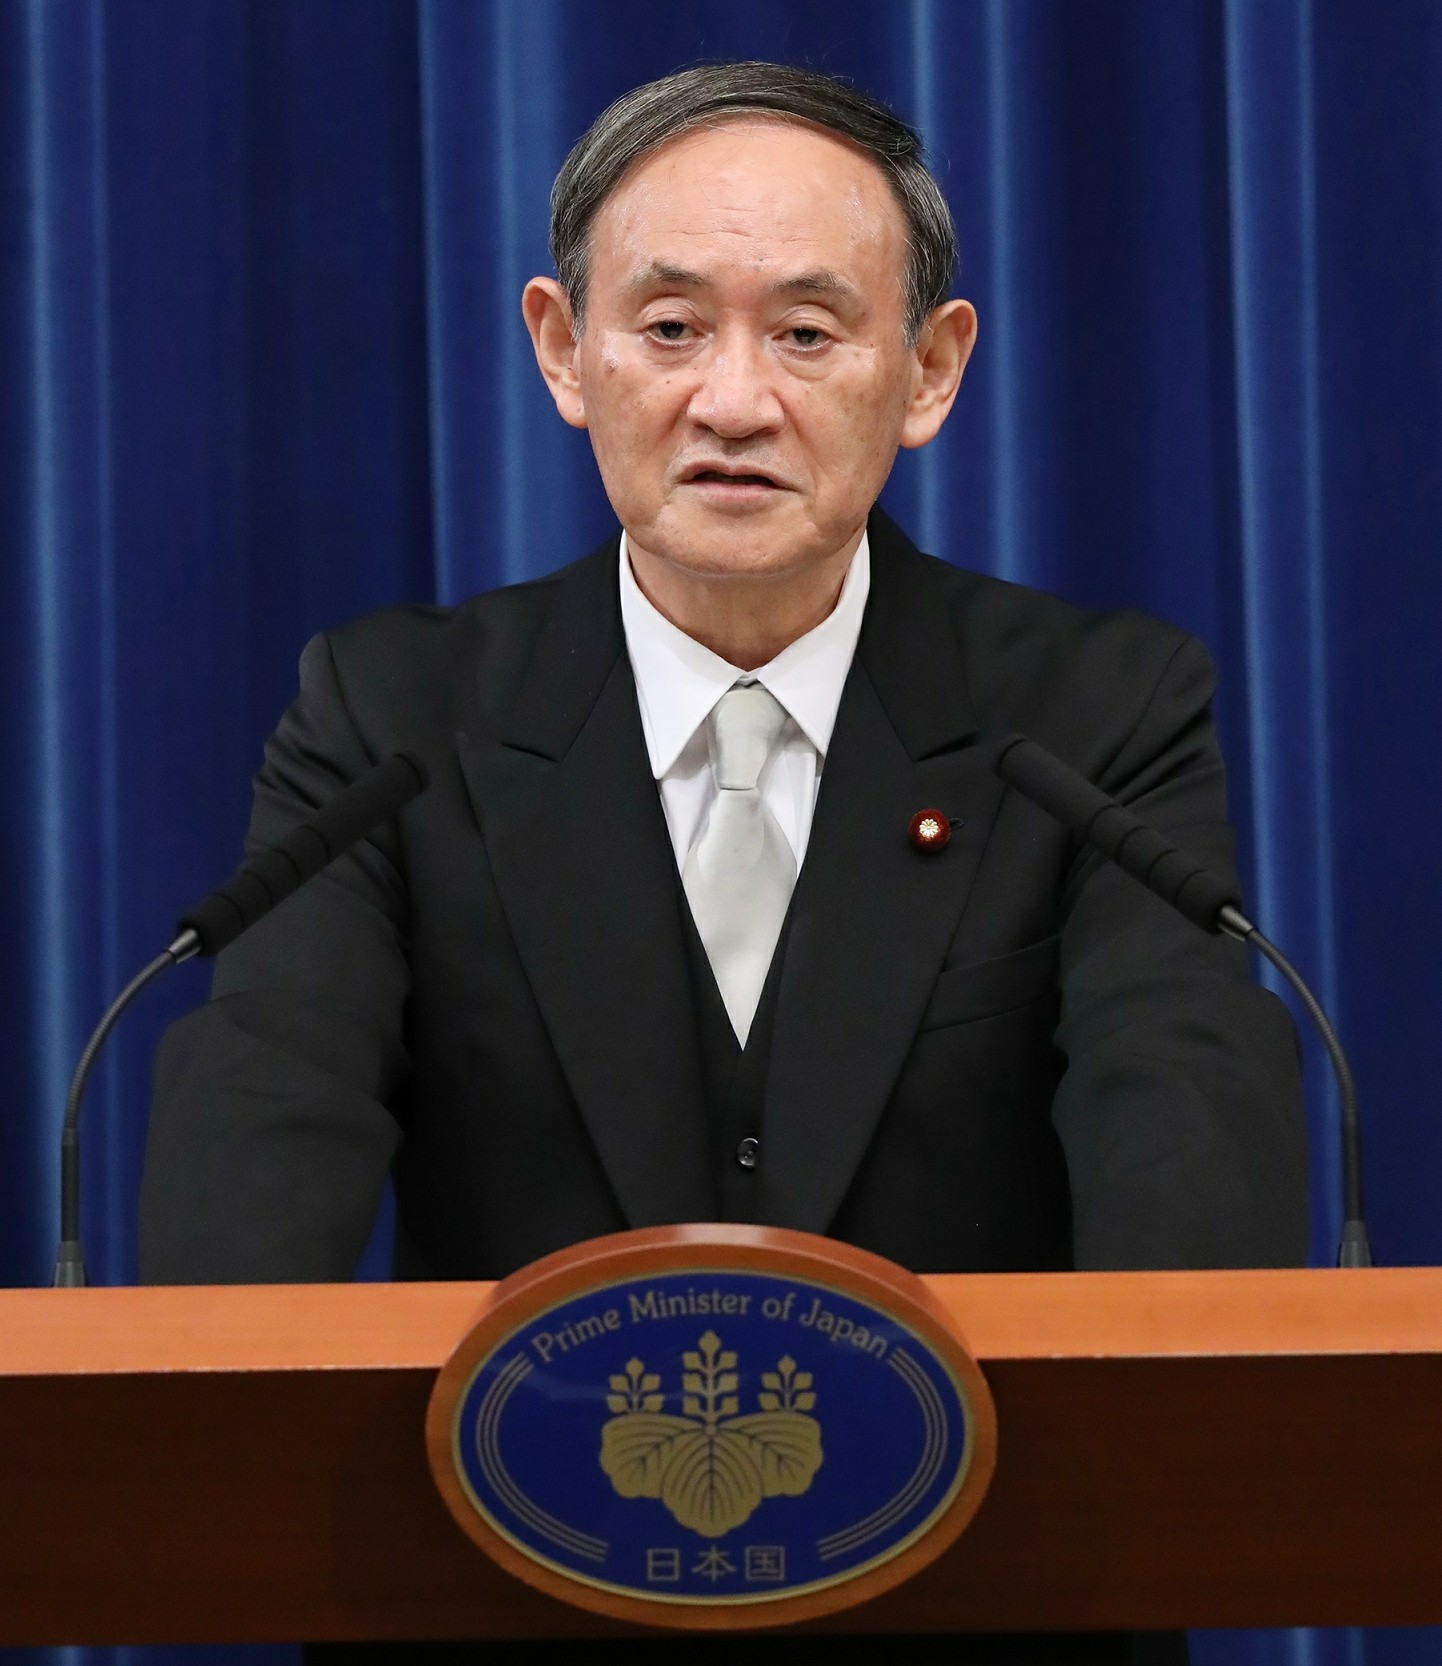 Japanese Prime Minister Yoshihide Suga giving his first press conference as Prime Minister on 16 September 2020.